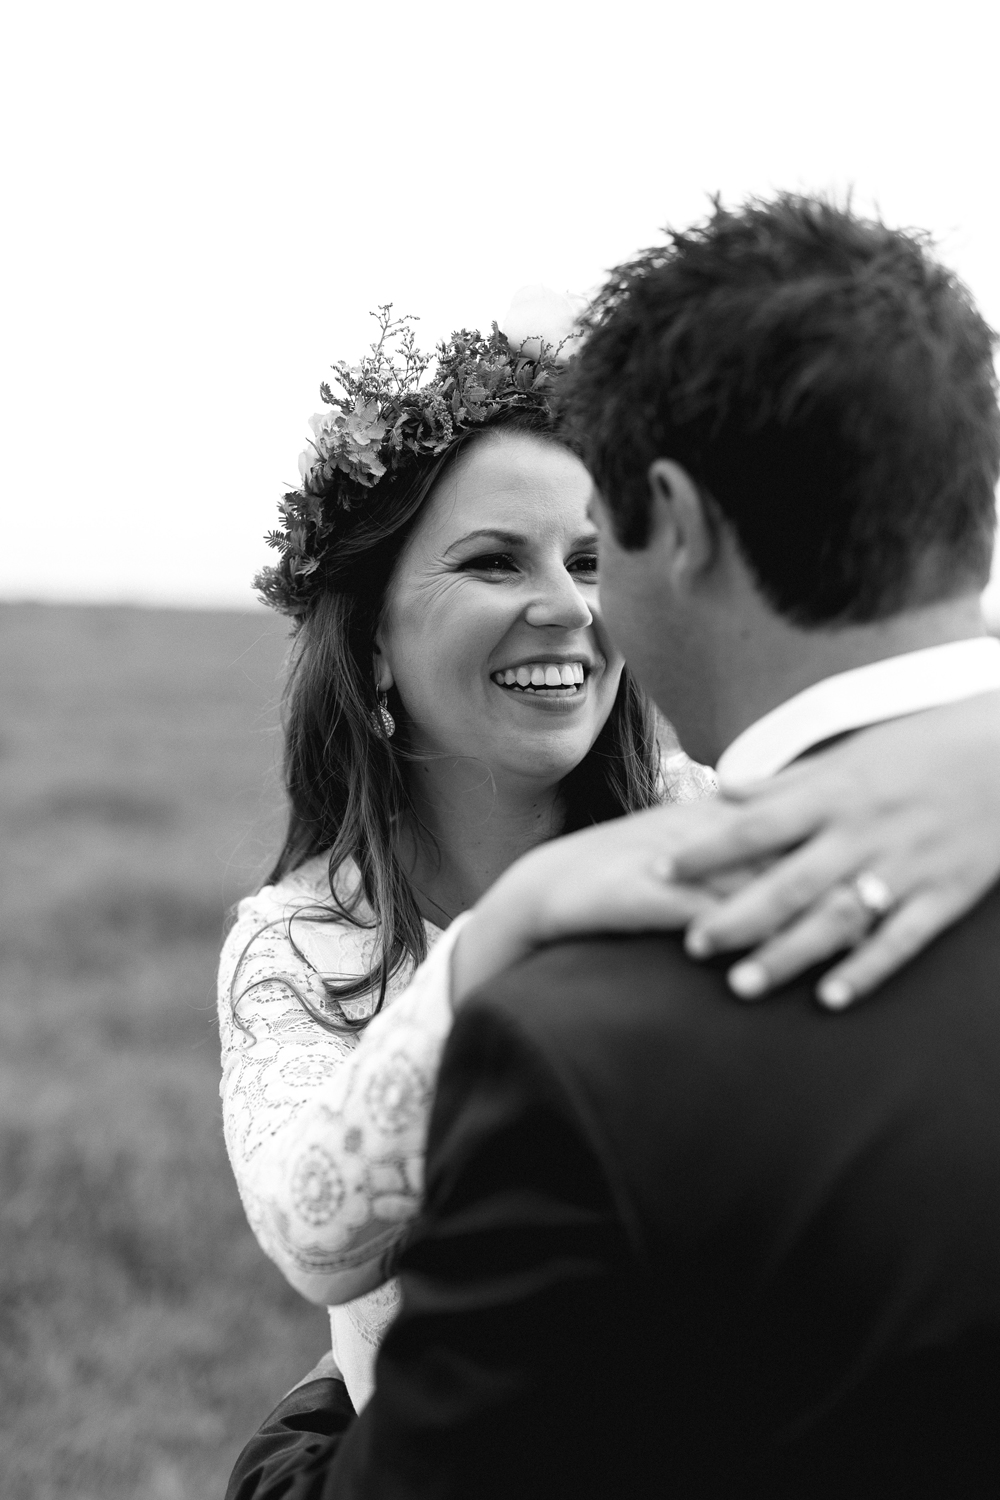 087-Byron-Bay-Wedding-Photographer-Carly-Tia-Photography.jpg